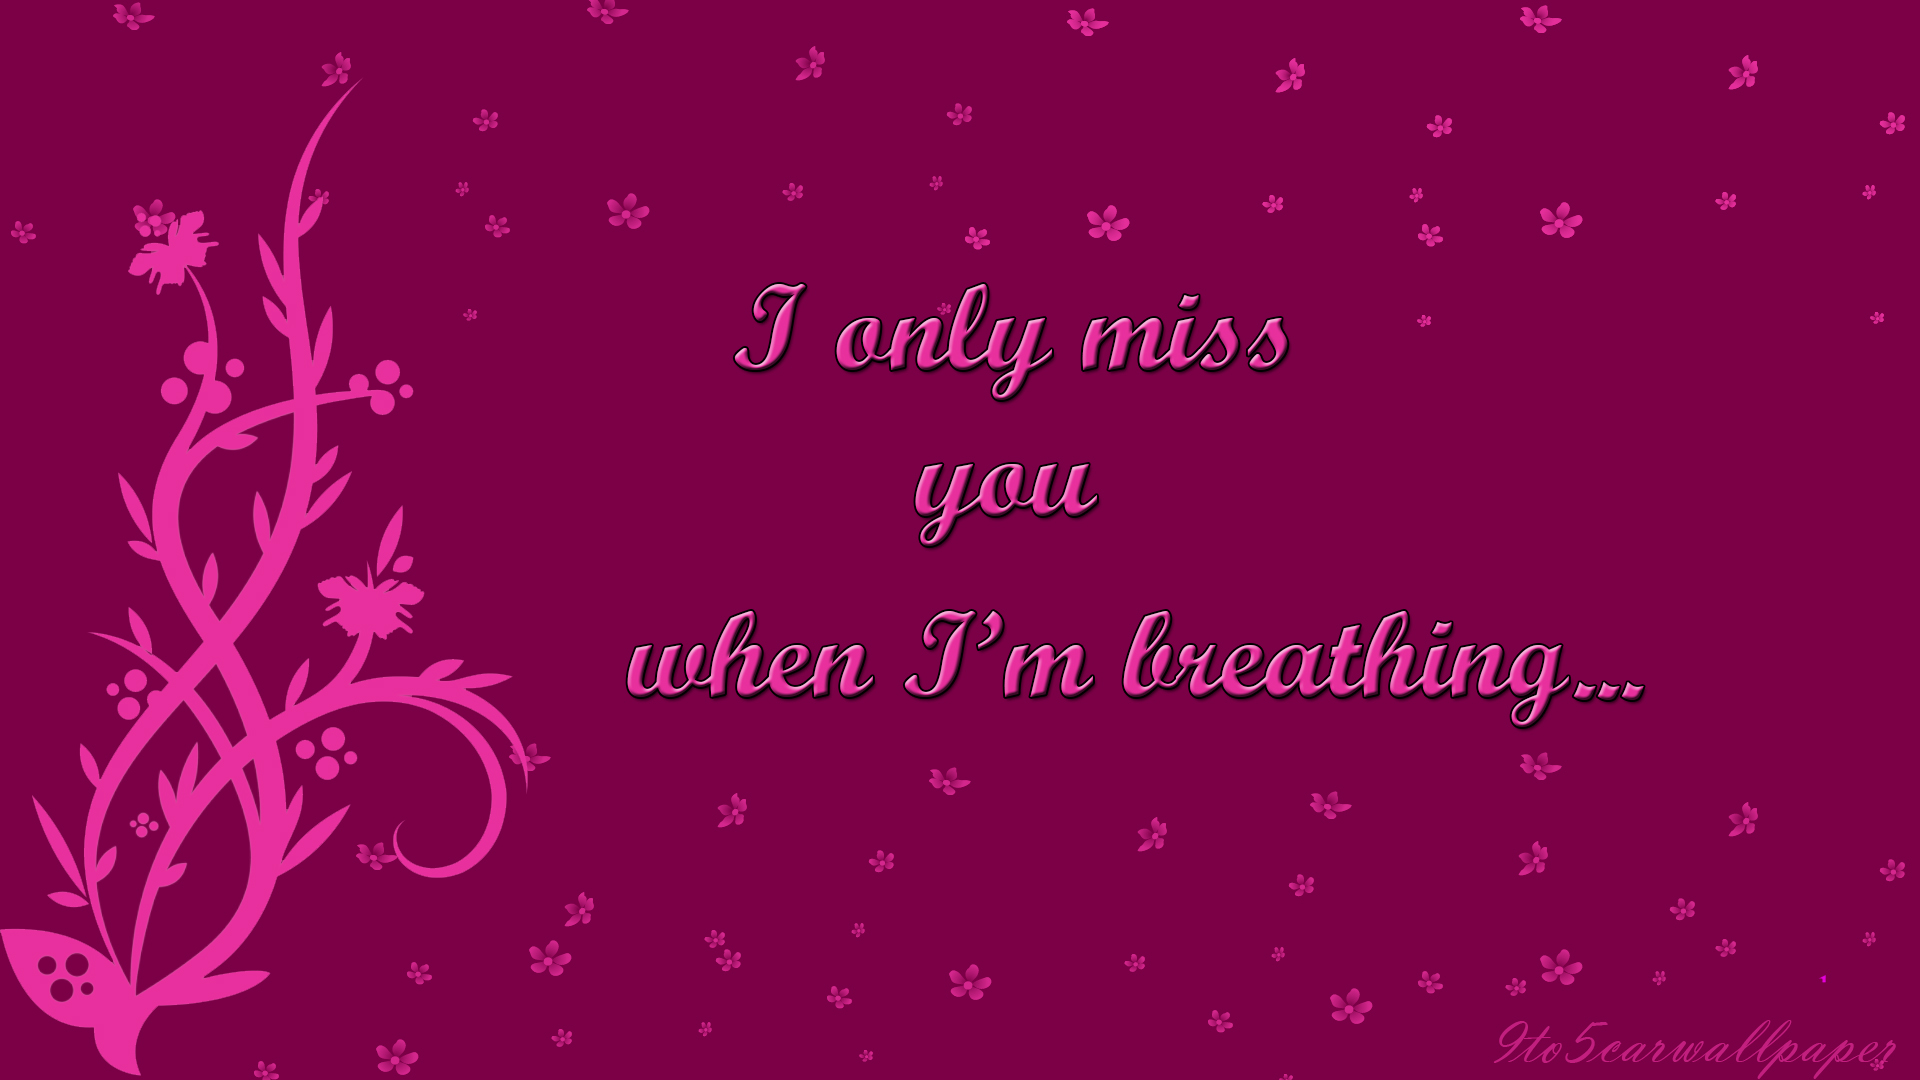 I miss you images quotes wallpapers car wallpapers i miss you wallpapers images quotes pics kristyandbryce Image collections